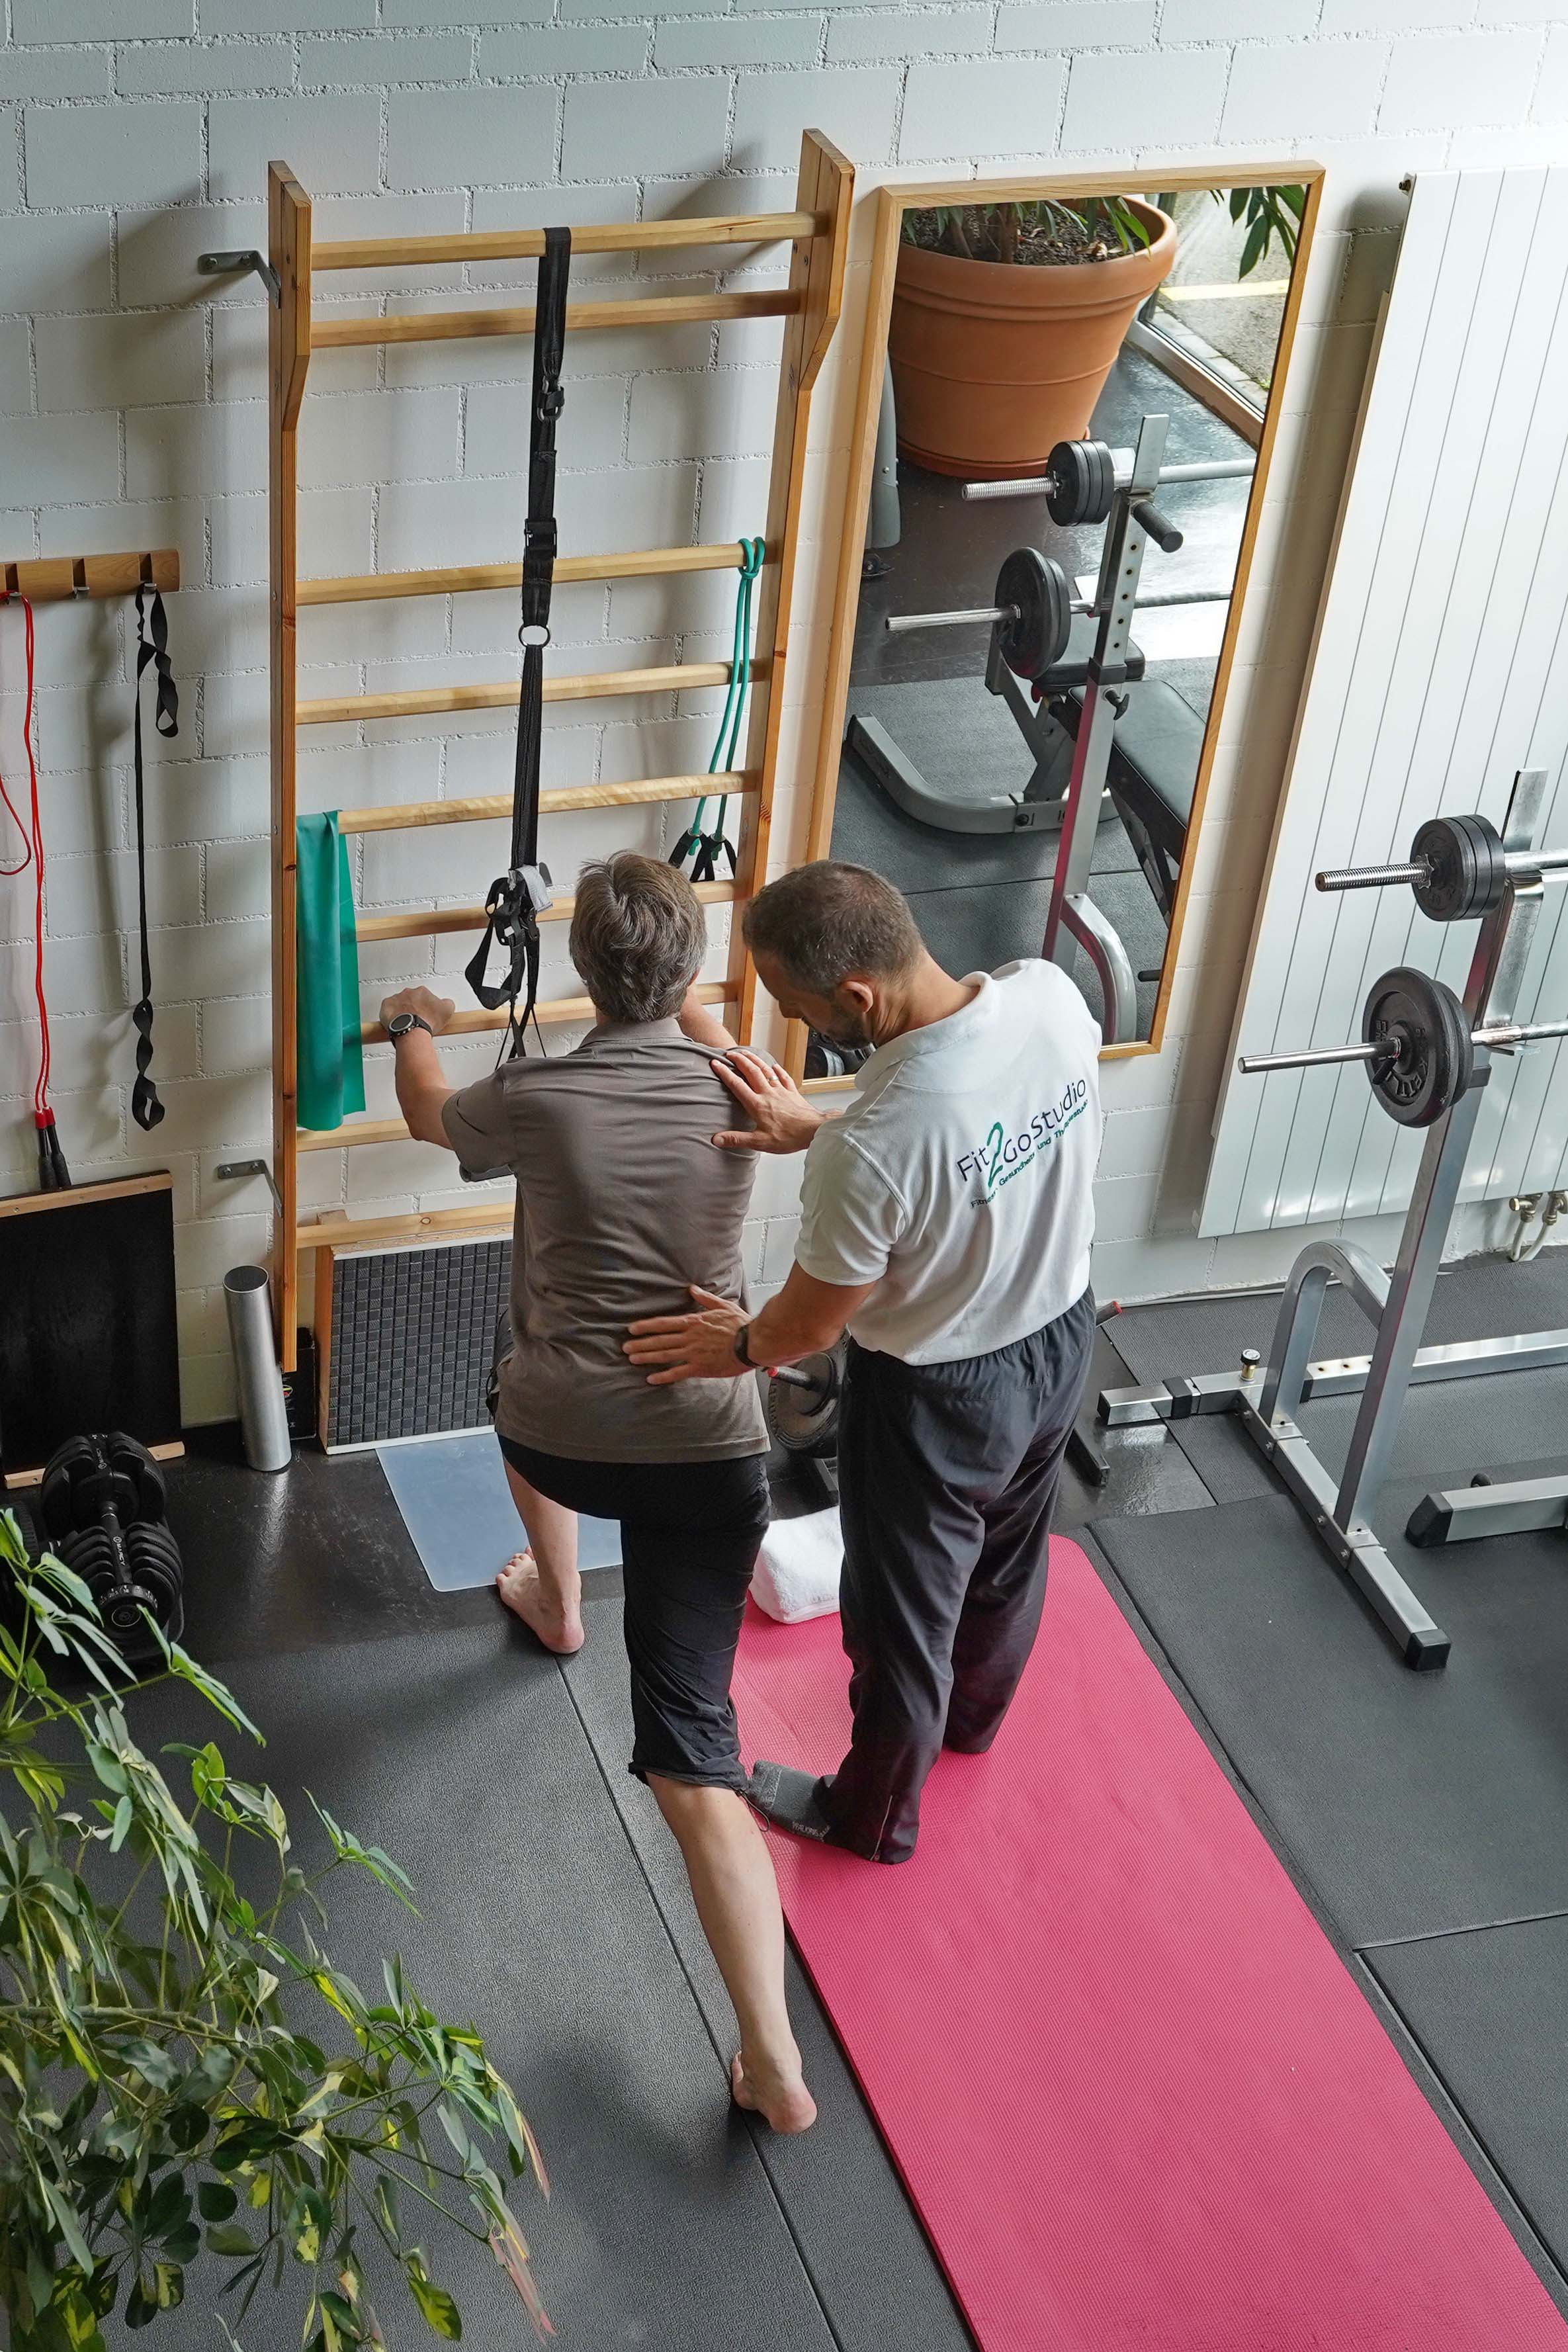 Gesundheit, Training, Coaching - Fit2Go Center in Uster 22